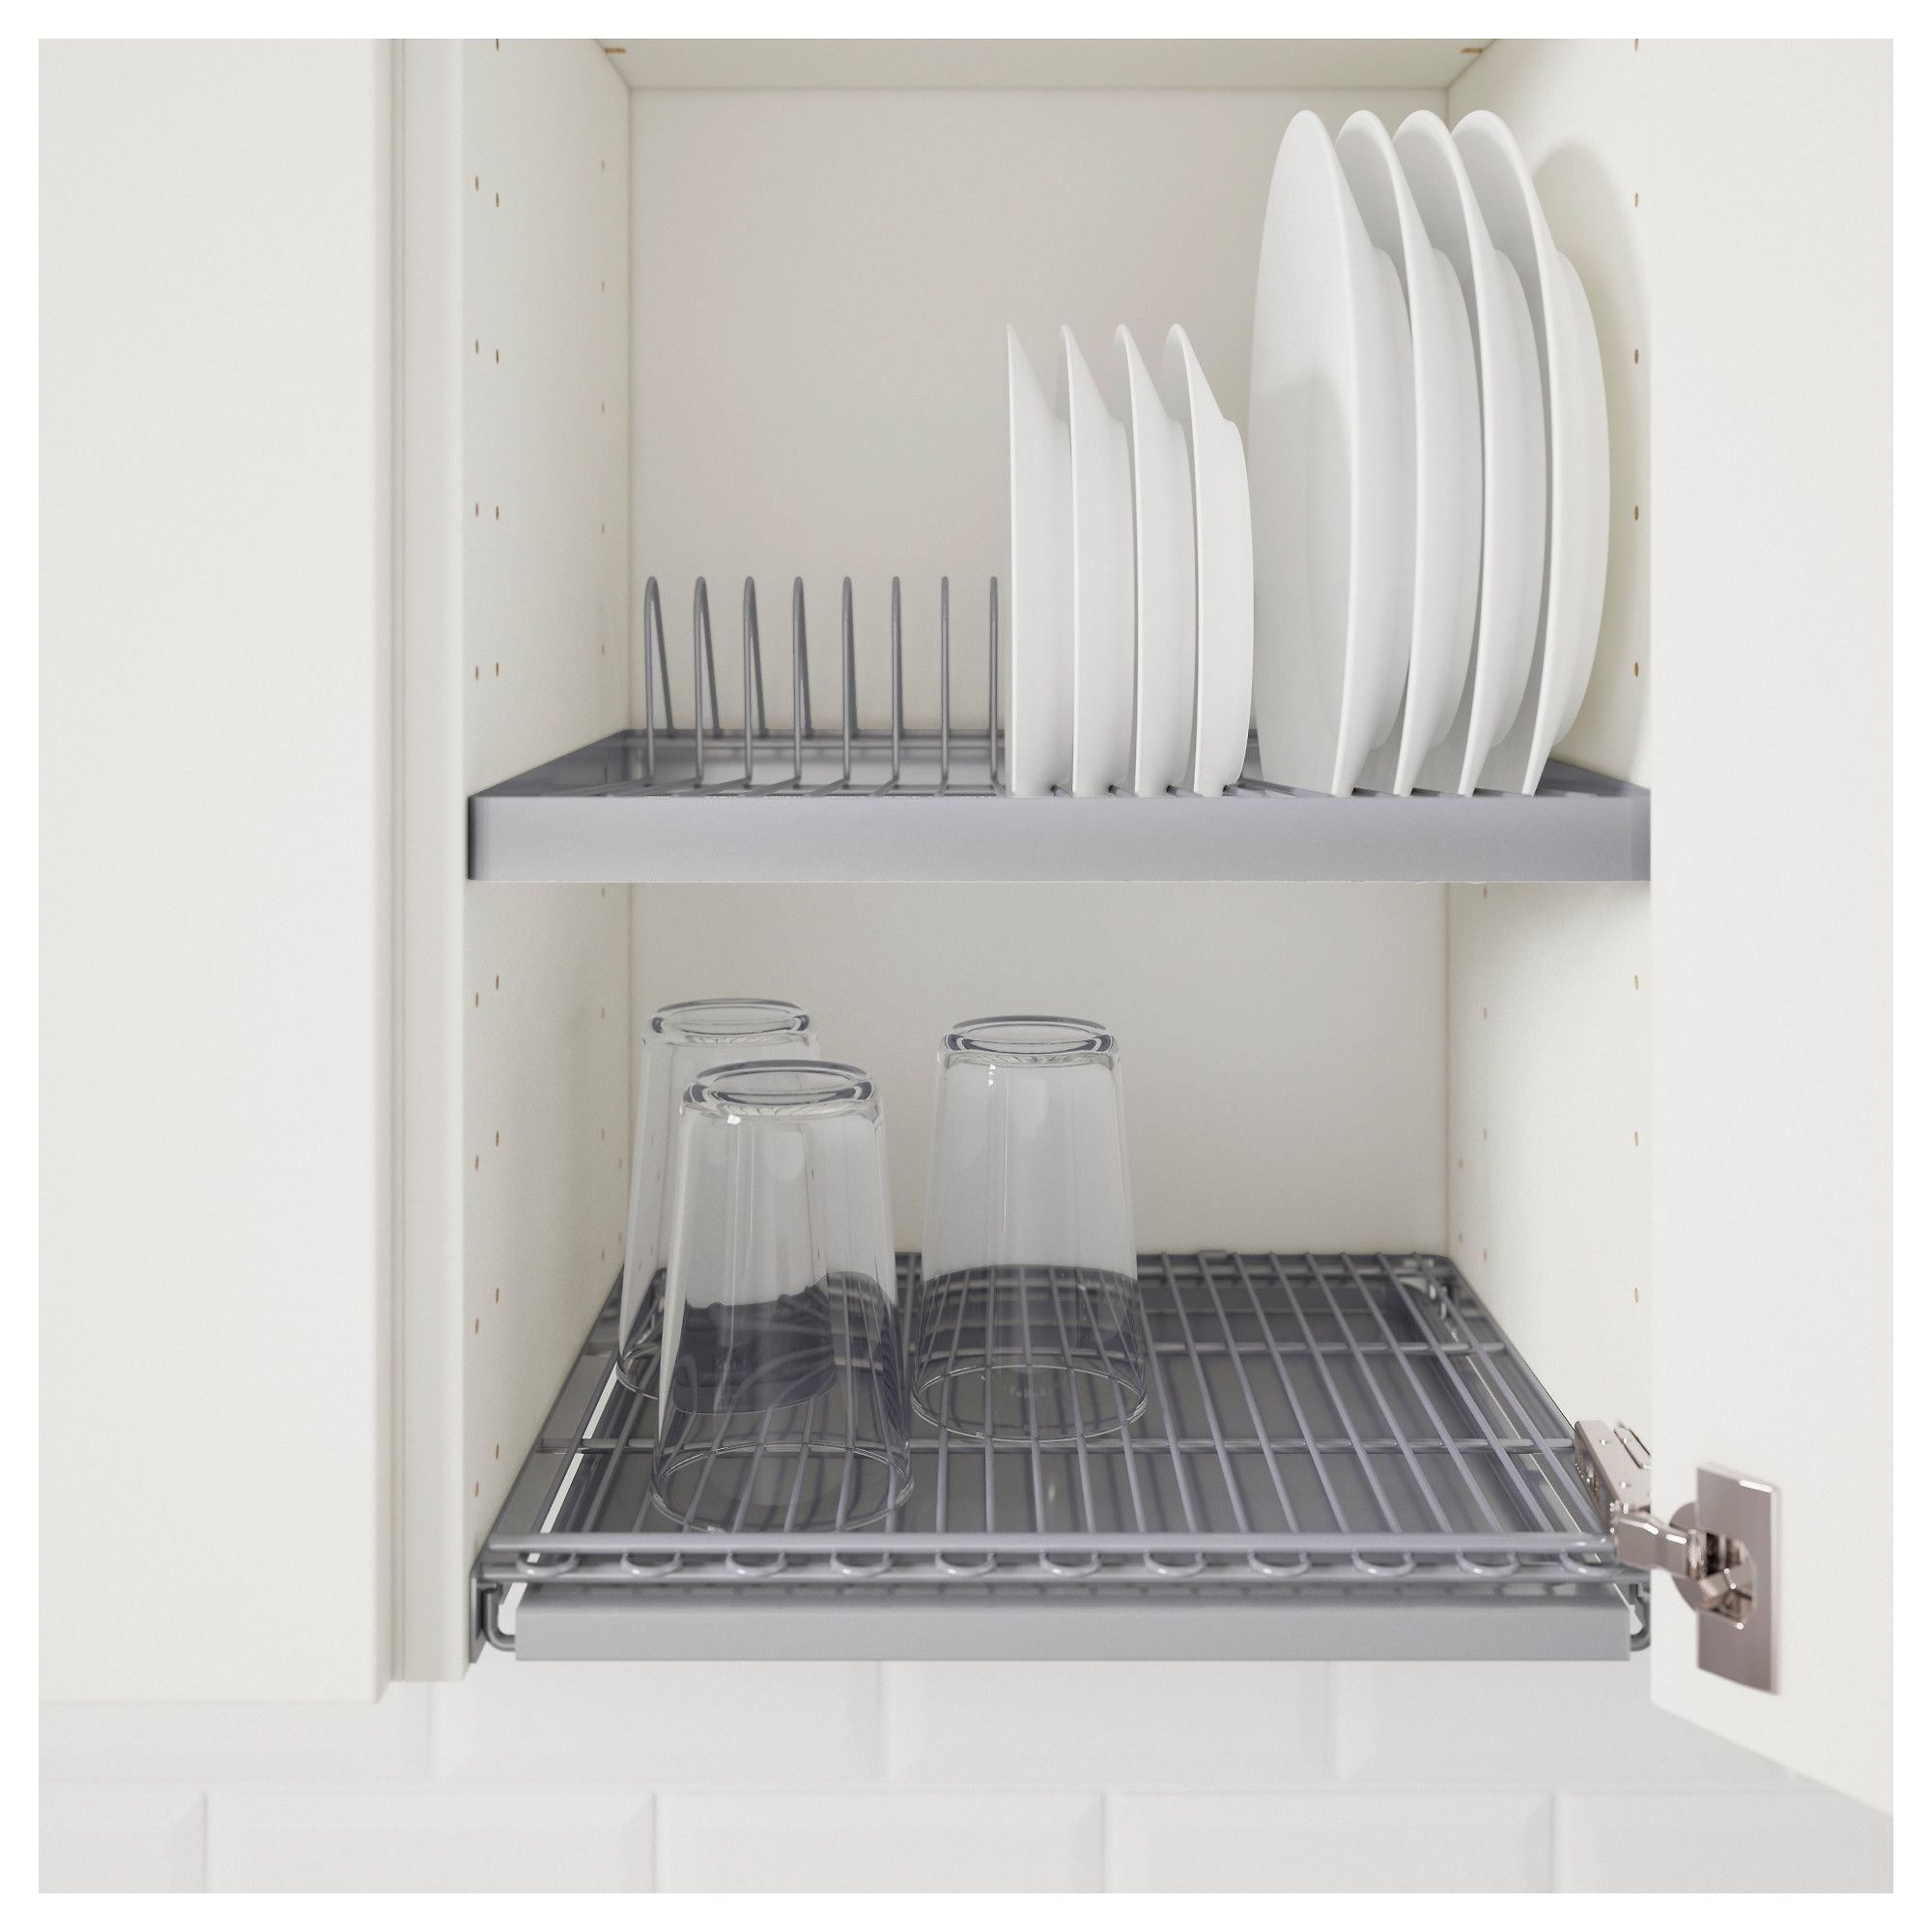 Exceptionnel UTRUSTA Dish Drainer For Wall Cabinet IKEA